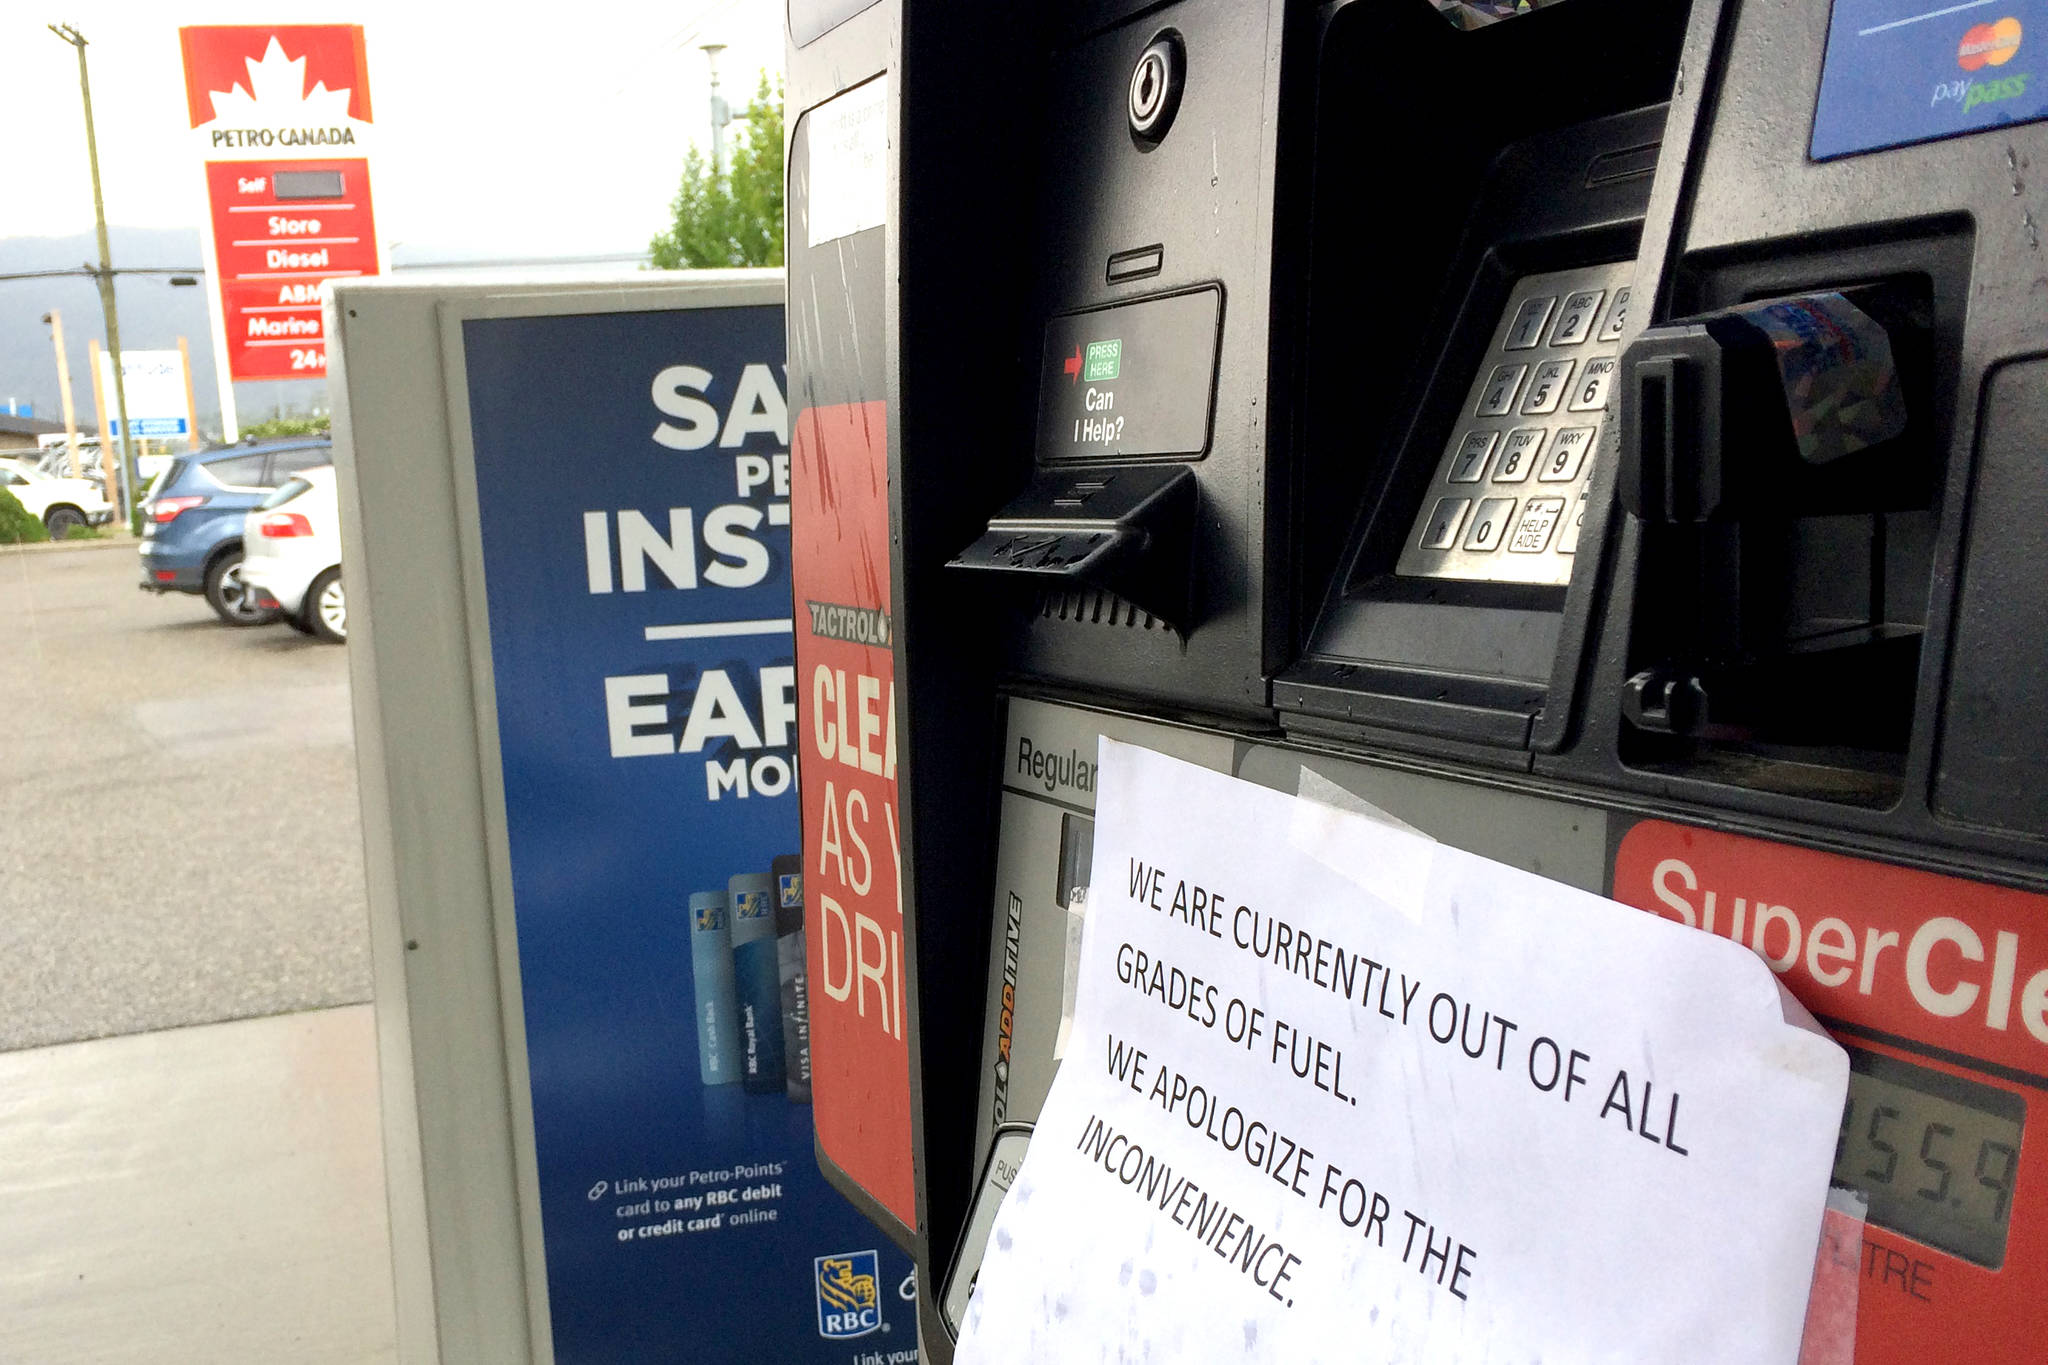 The Petro-Canada gas station on 25th Avenue is out of fuel. (Jennifer Smith/Morning Star)